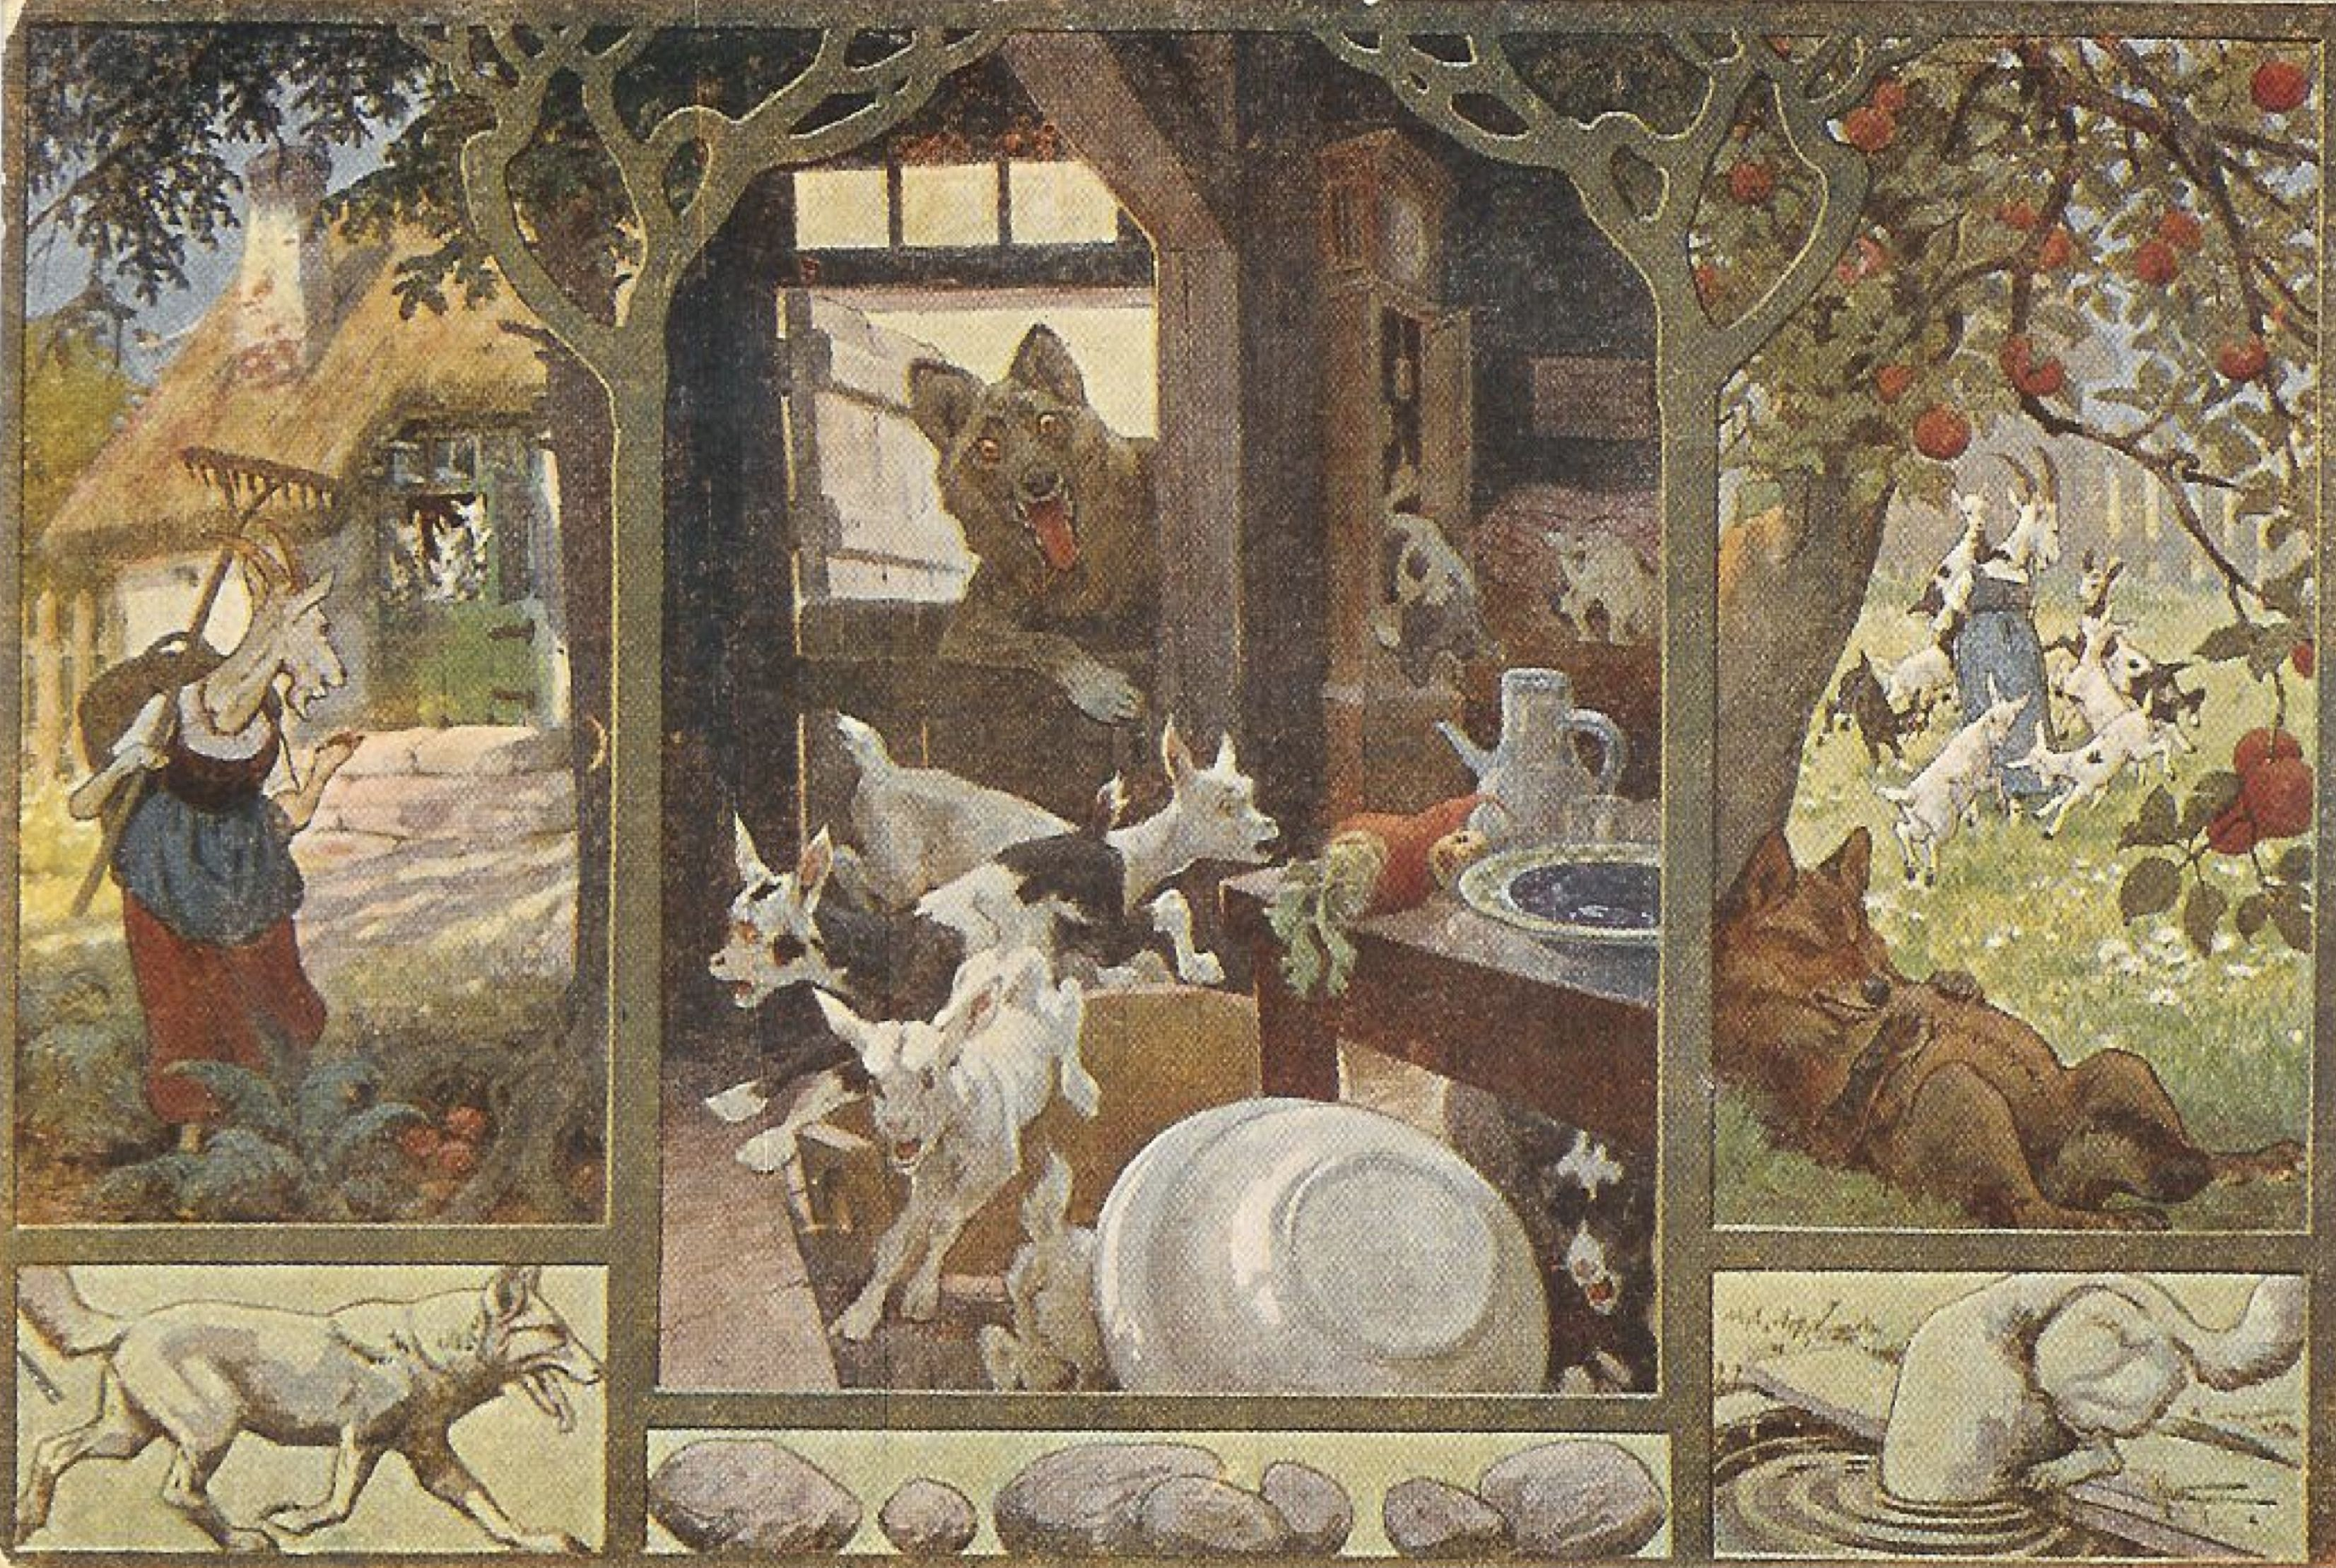 Pin By Roland Schamberger On Vogel Hermann 1854 1921 Art Fairy Tale Illustration Fairy Tales